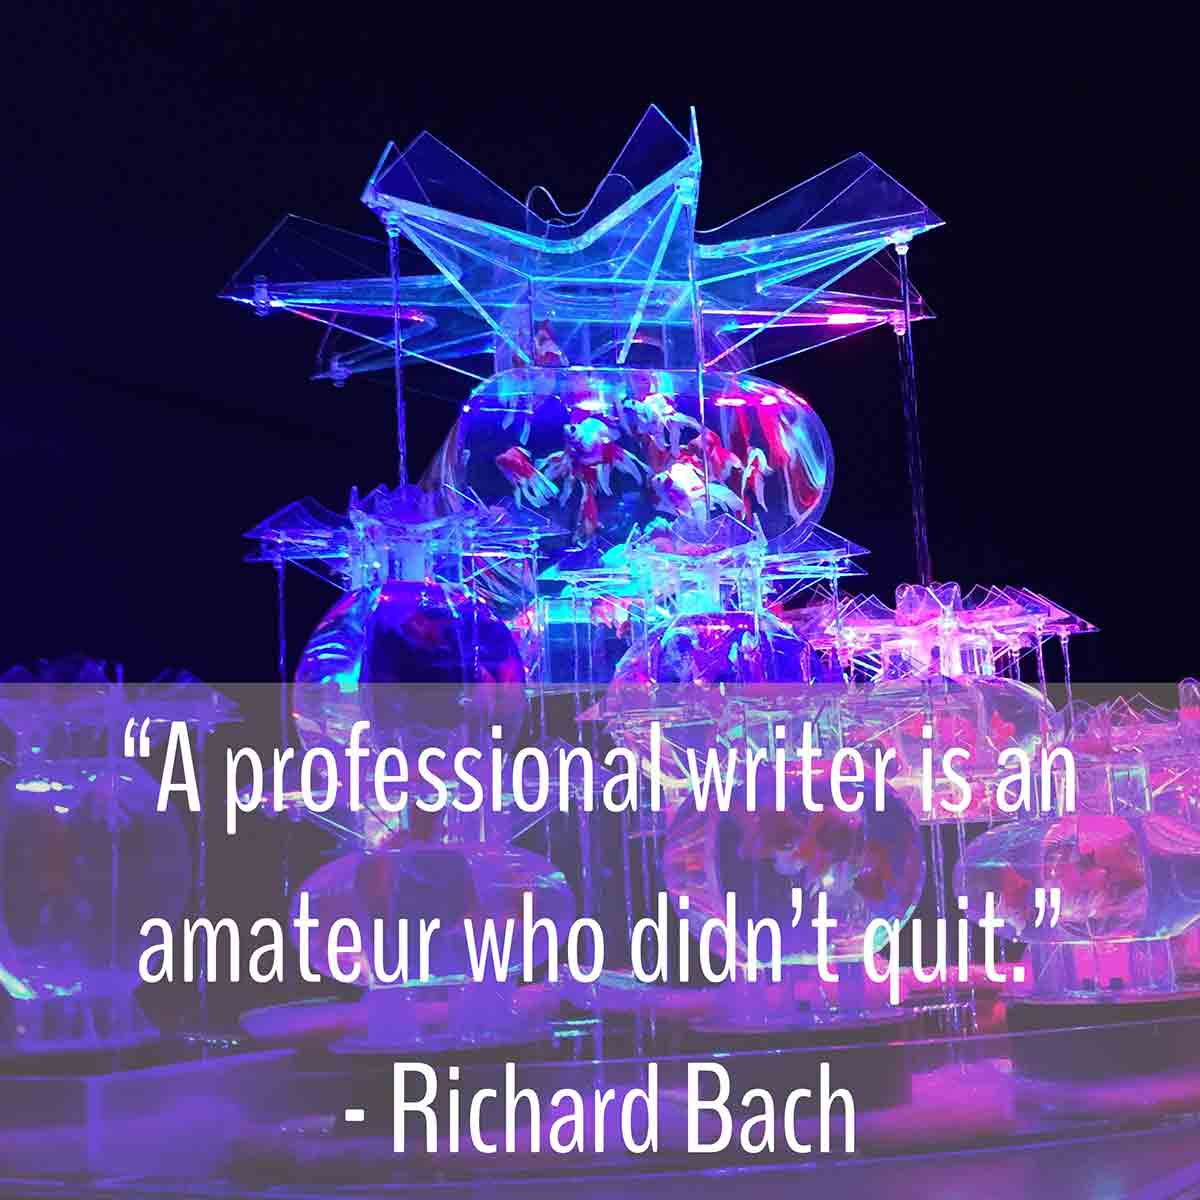 a professional writer is an amateur who didn't quit